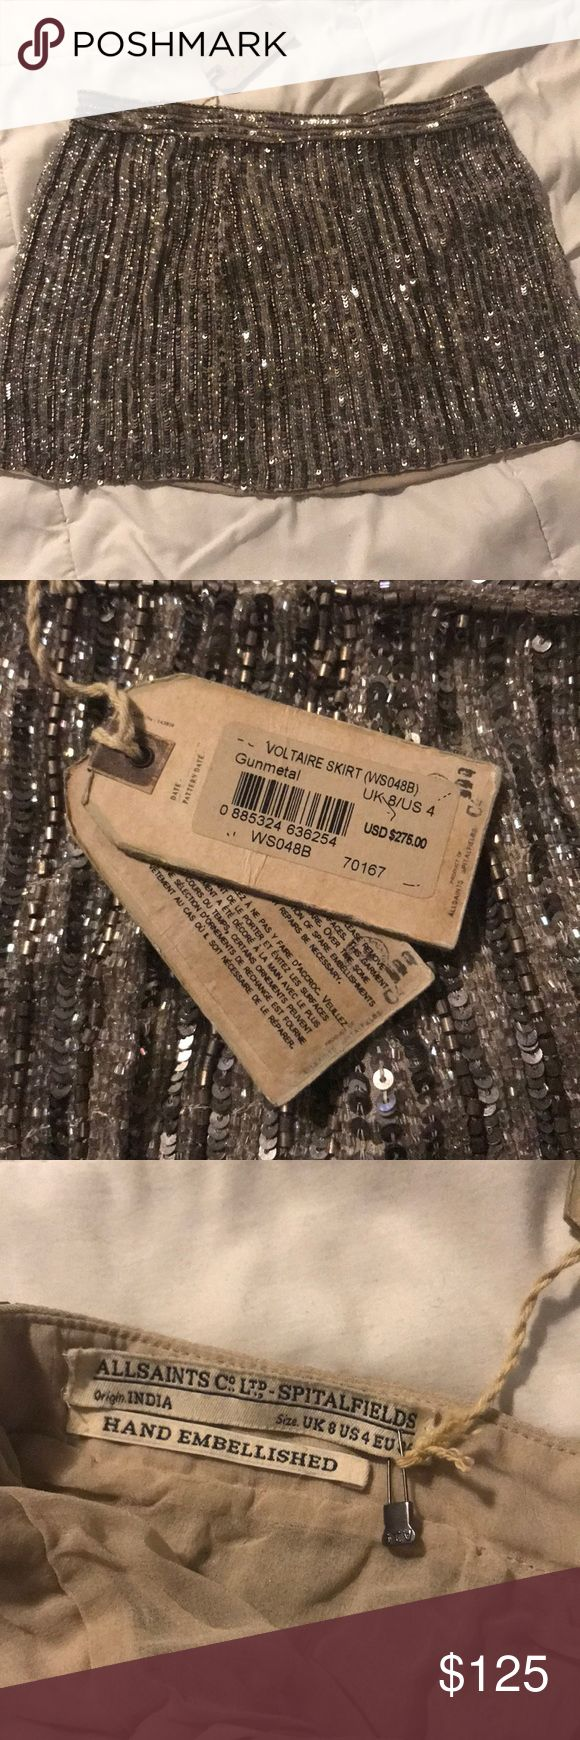 Hand embellished All Saints skirt UK 8 US 4  Hand embellished beaded and sequin mini skirt from All Saints  Brand New with Tags  Retailed $275  In perfect condition All Saints Skirts Mini